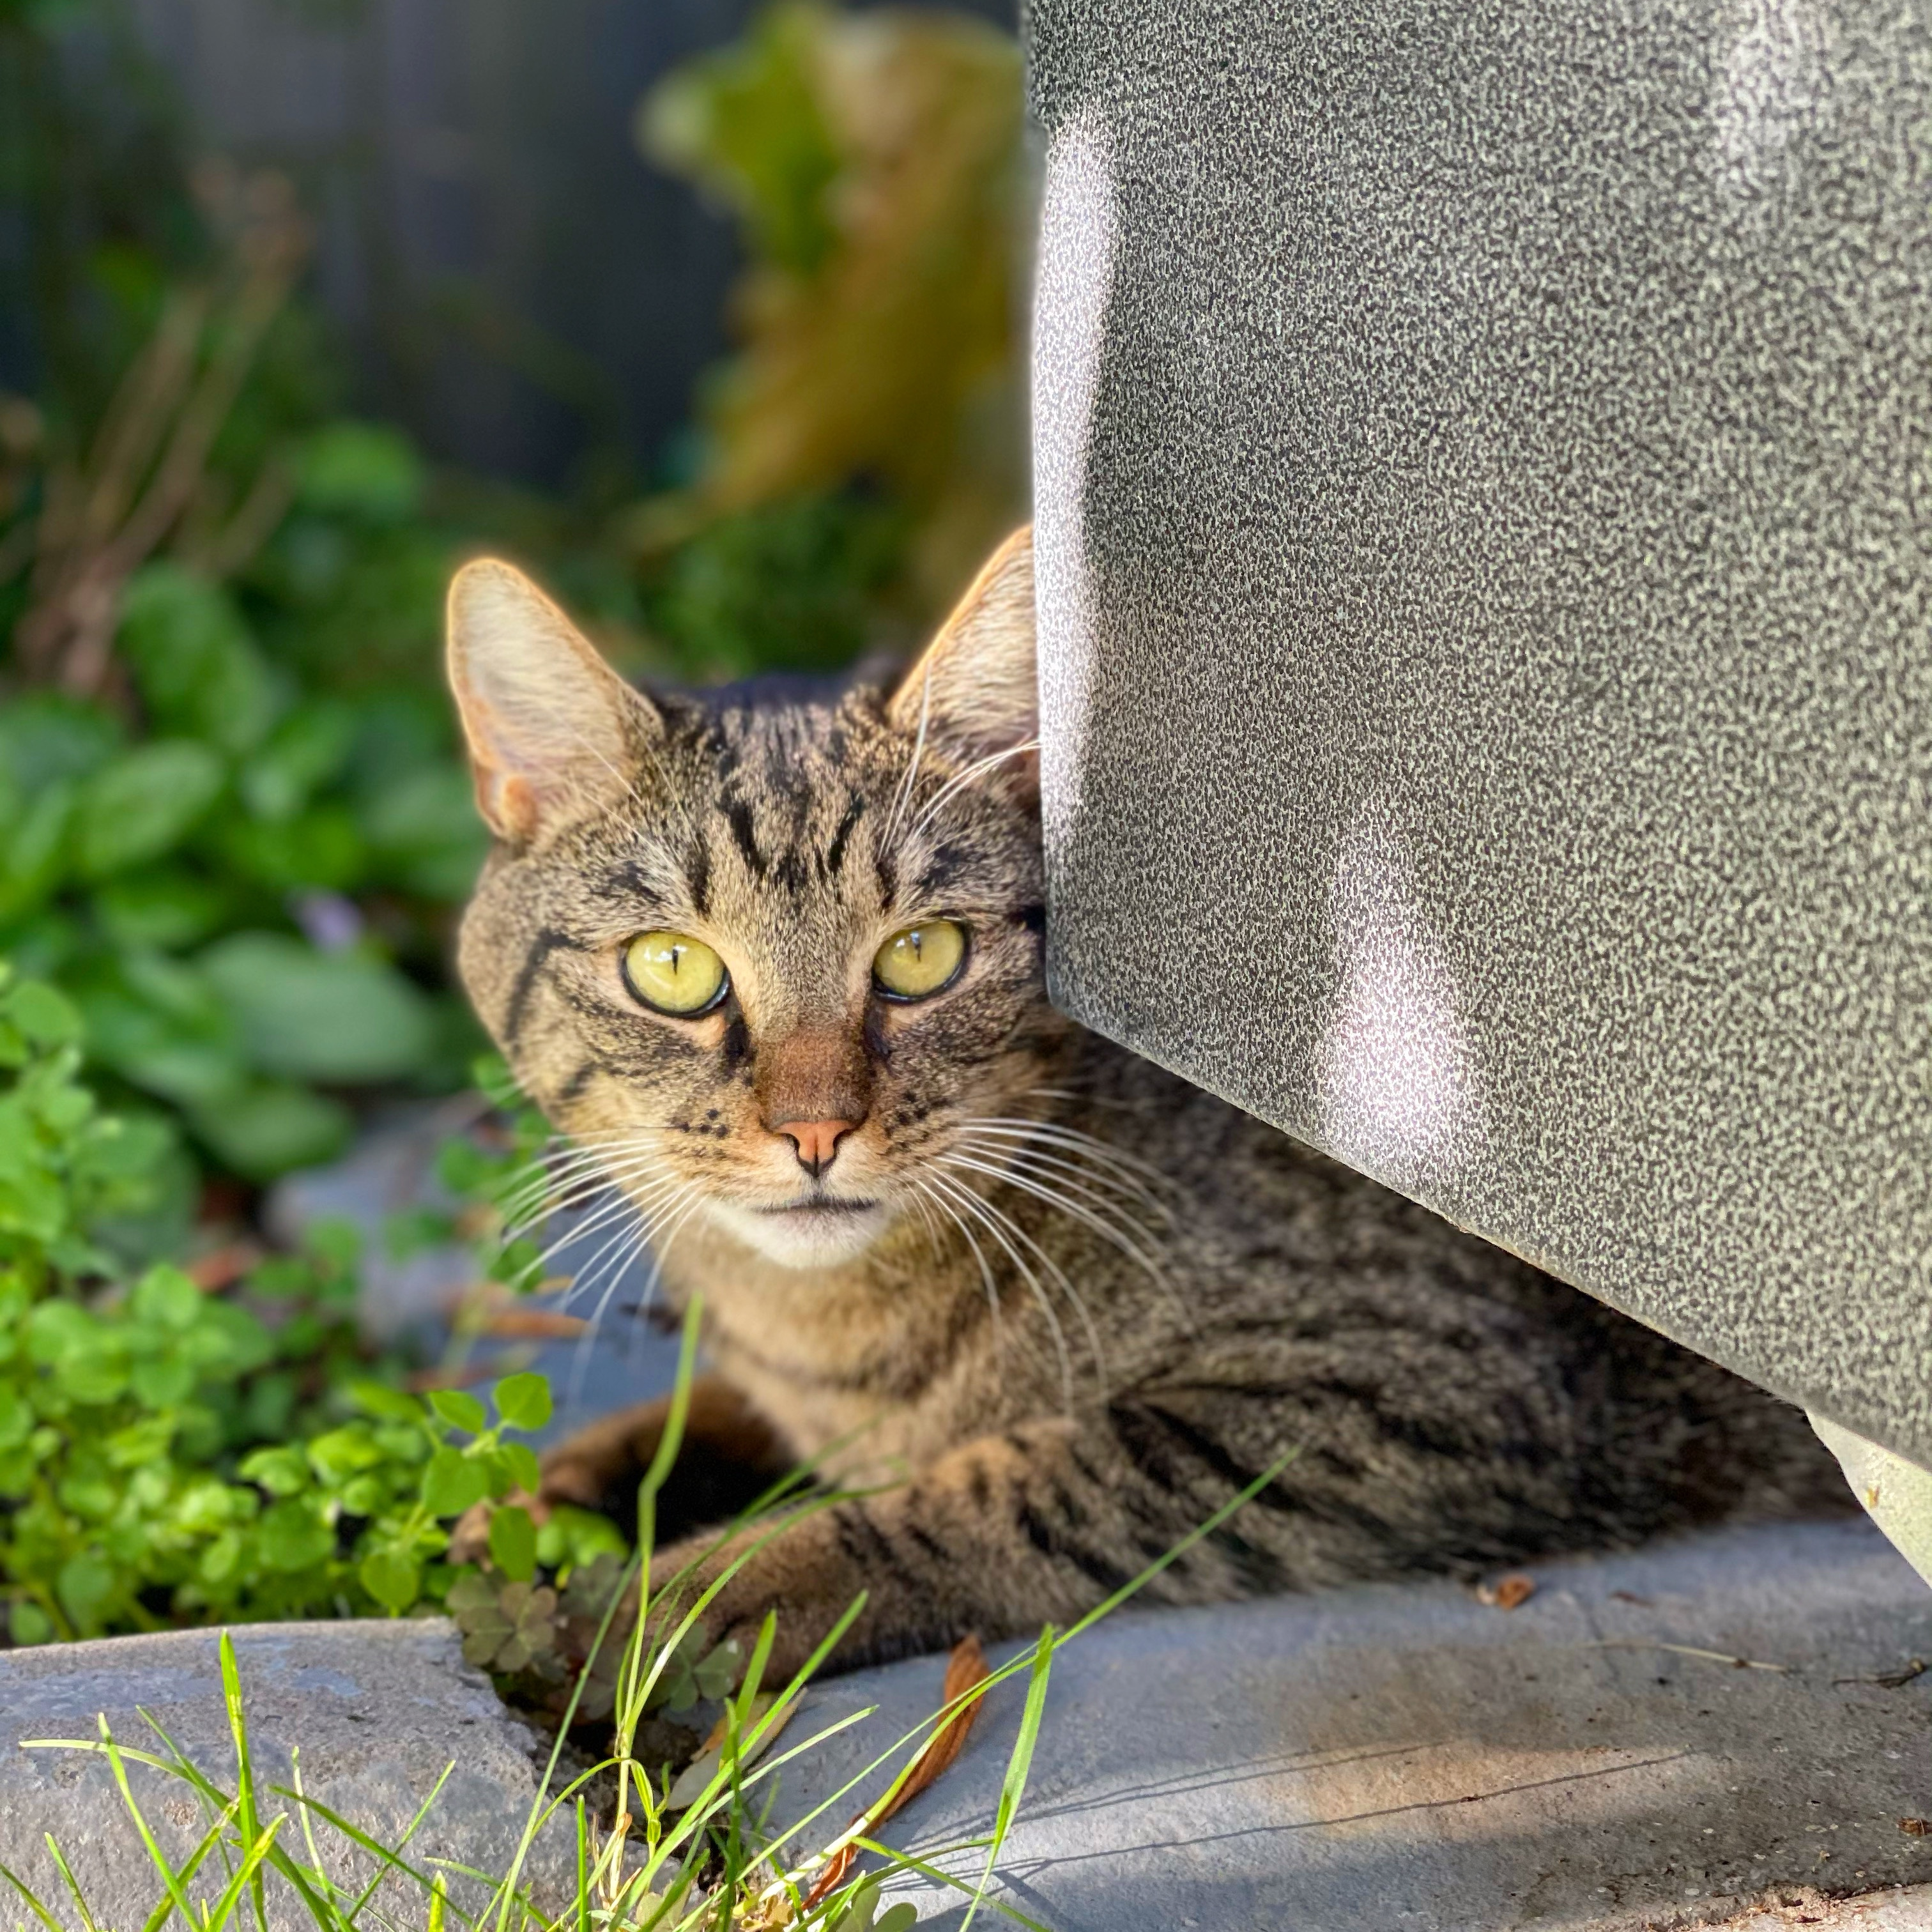 Ginny the tabby cat, lying on the garden next to the concrete curbing and the planter box on the patio